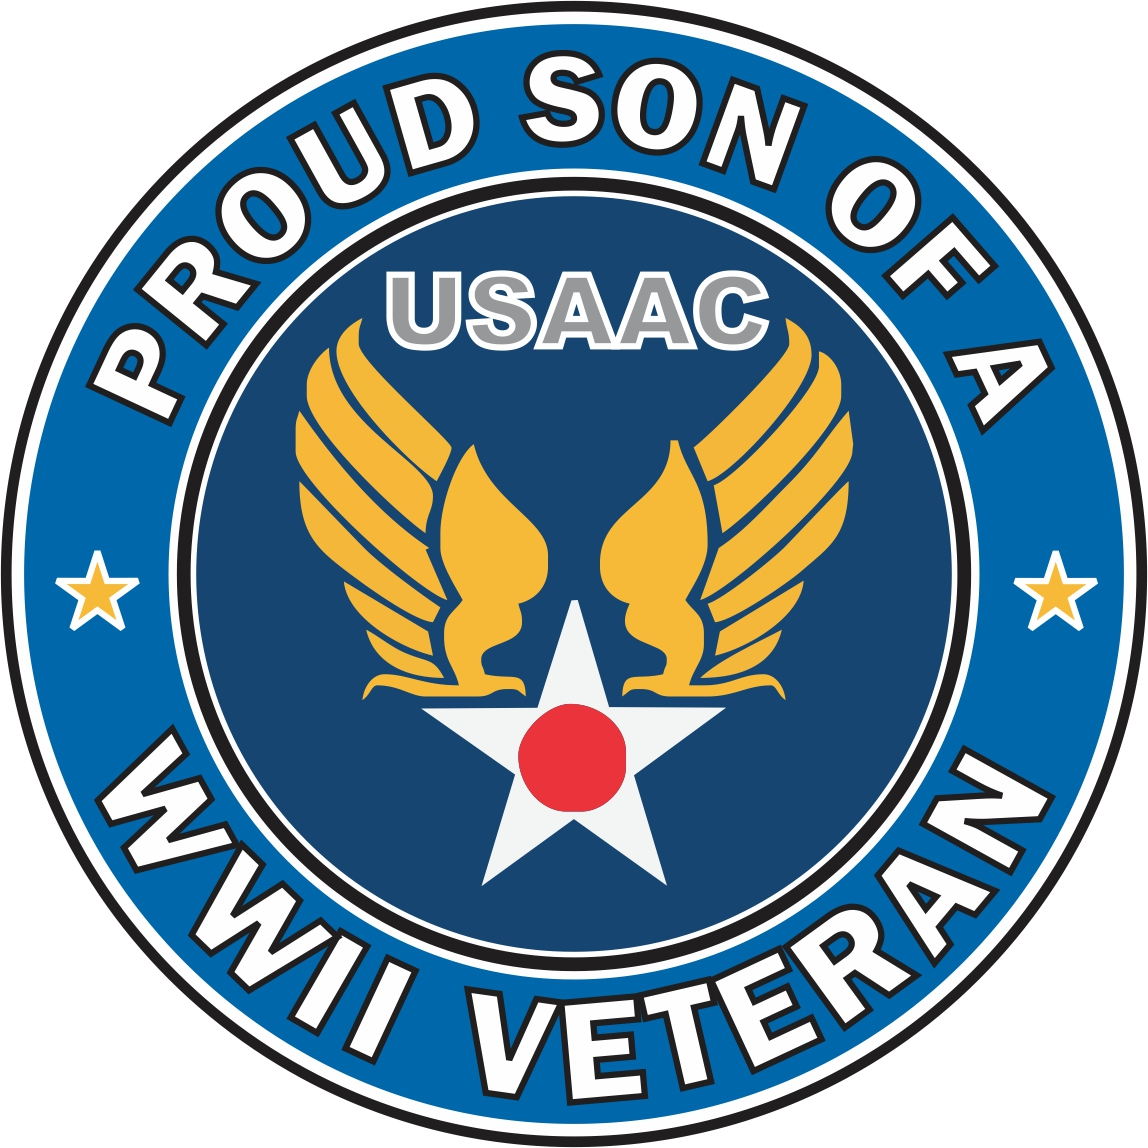 Army air corps proud son ww2 veteran us army air corps proud son ww2 veteran biocorpaavc Gallery